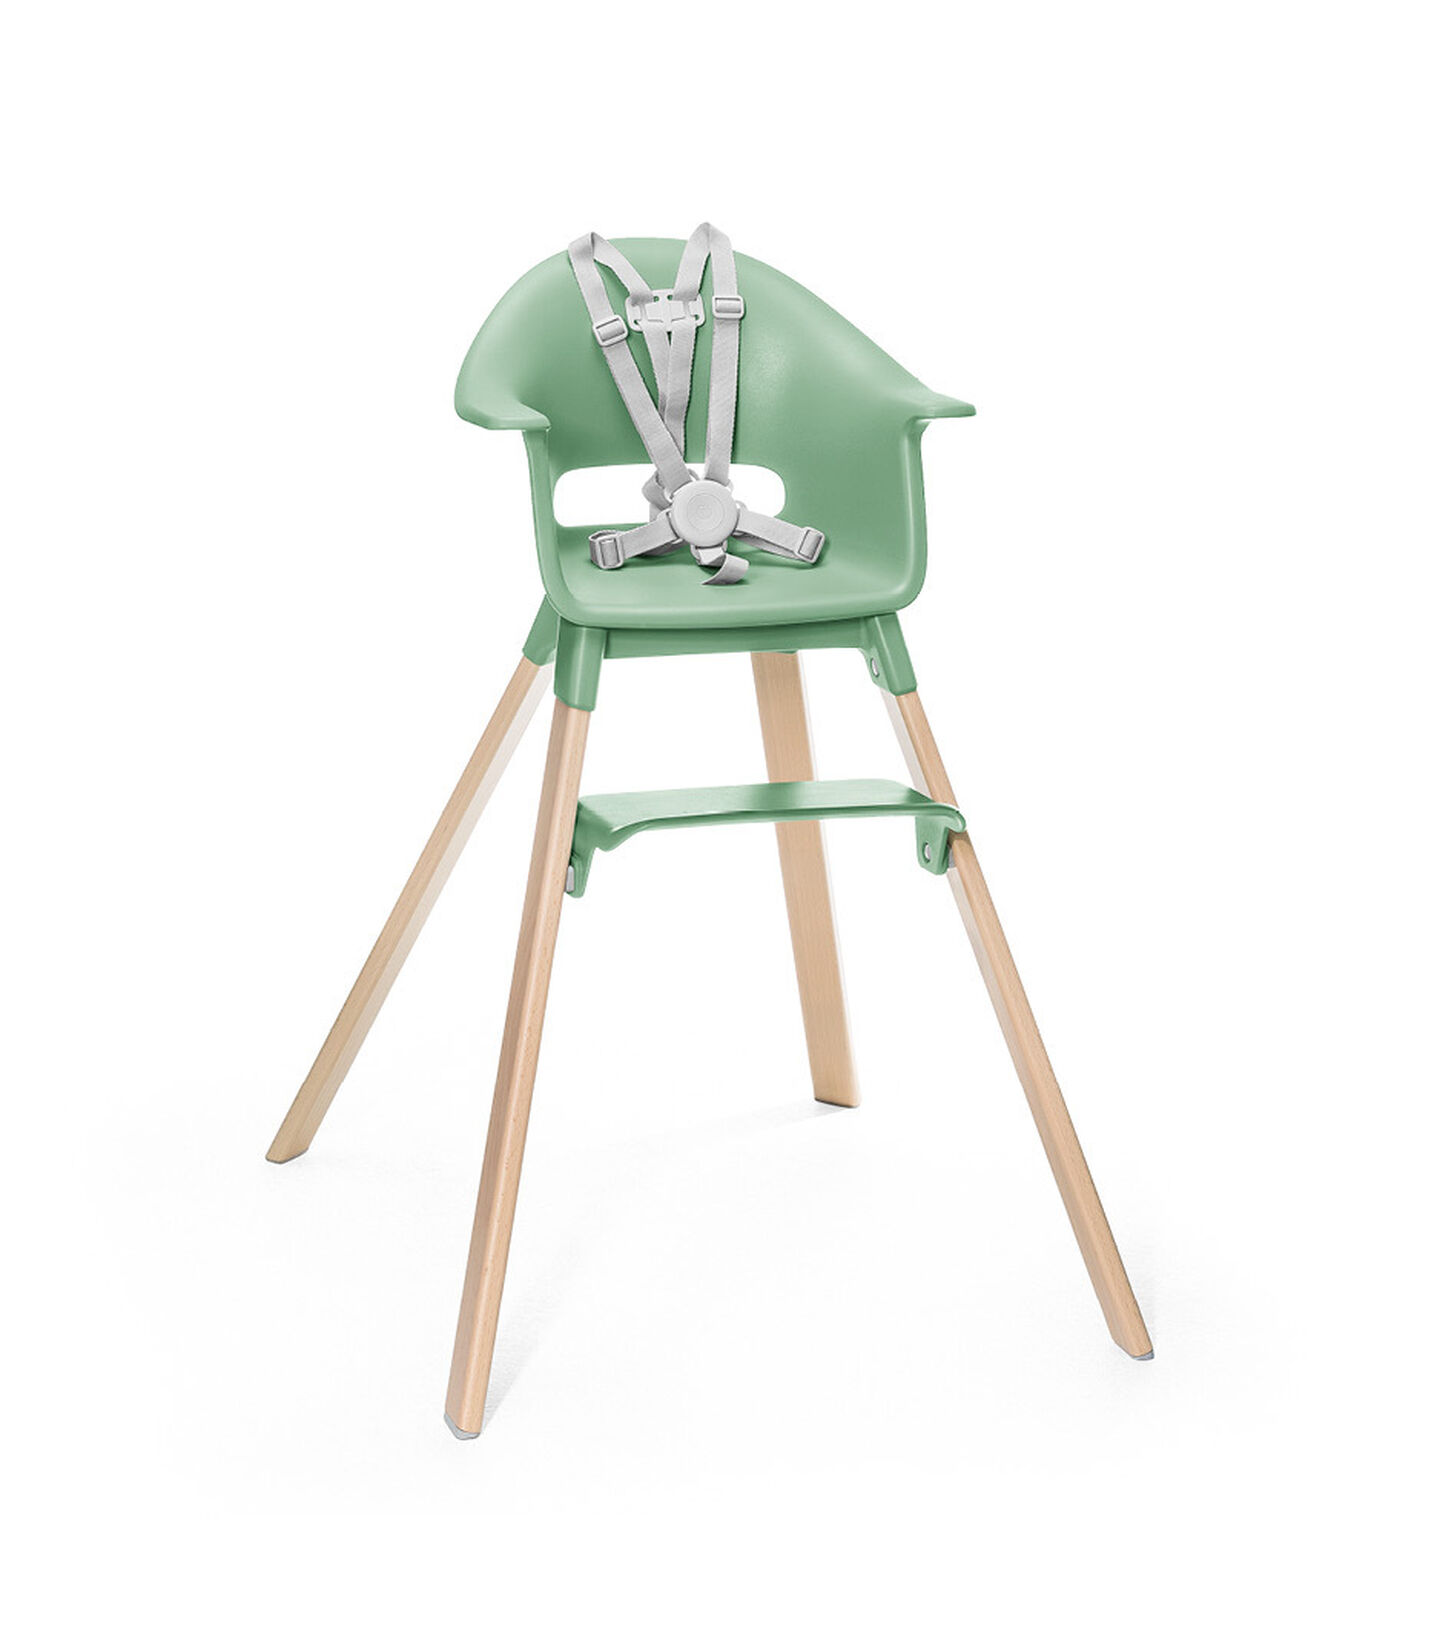 Stokke® Clikk™ High Chair. Natural Beech wood and Clover Green plastic parts. Stokke® Harness attached. Footrest low.